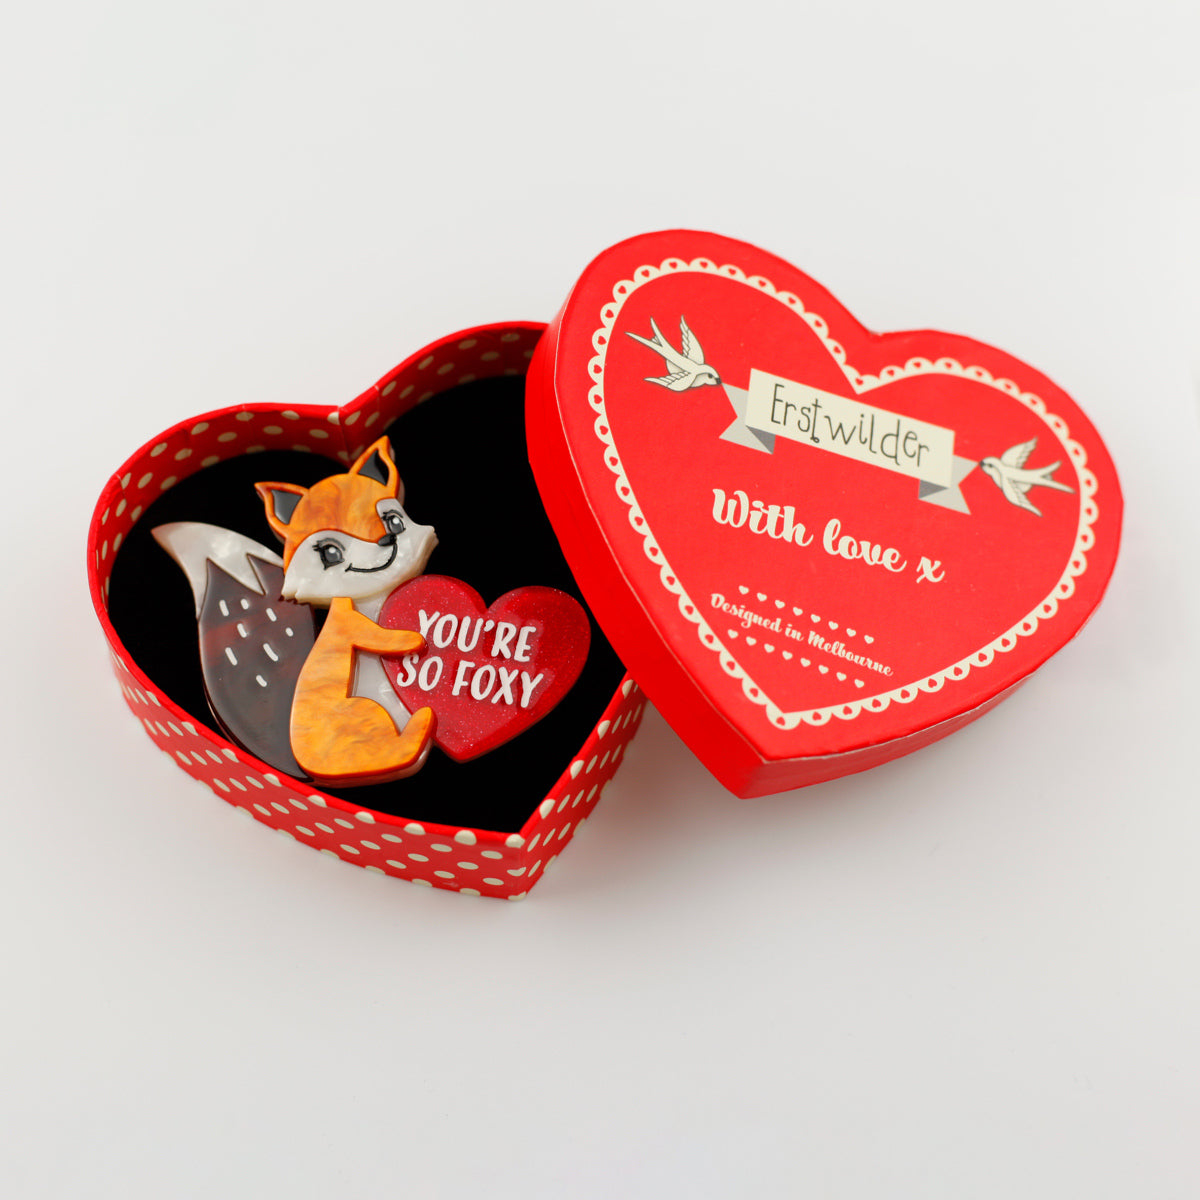 You're So Foxy Brooch by Erstwilder